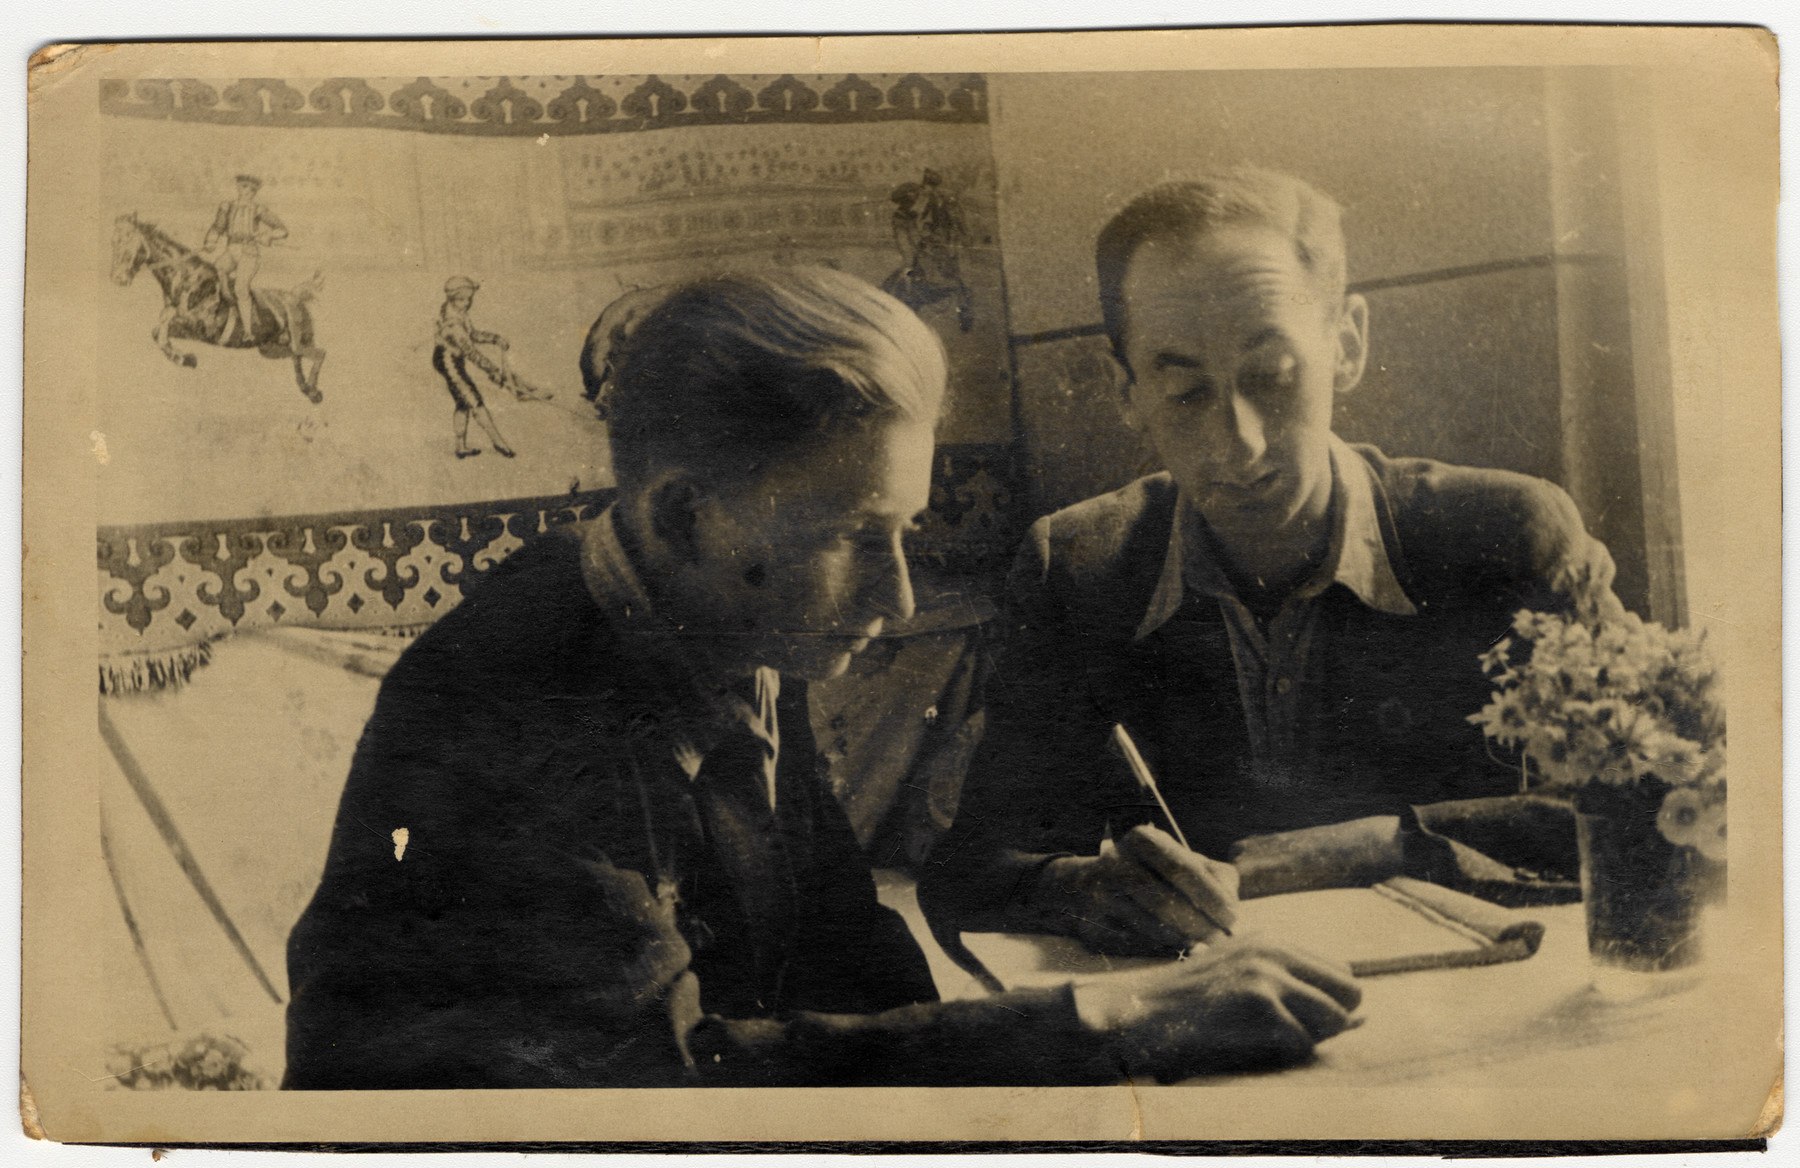 Two young men work at a desk [in the Lodz ghetto].  On the left is Abram Zelig and on the right is Aron Jakubson.